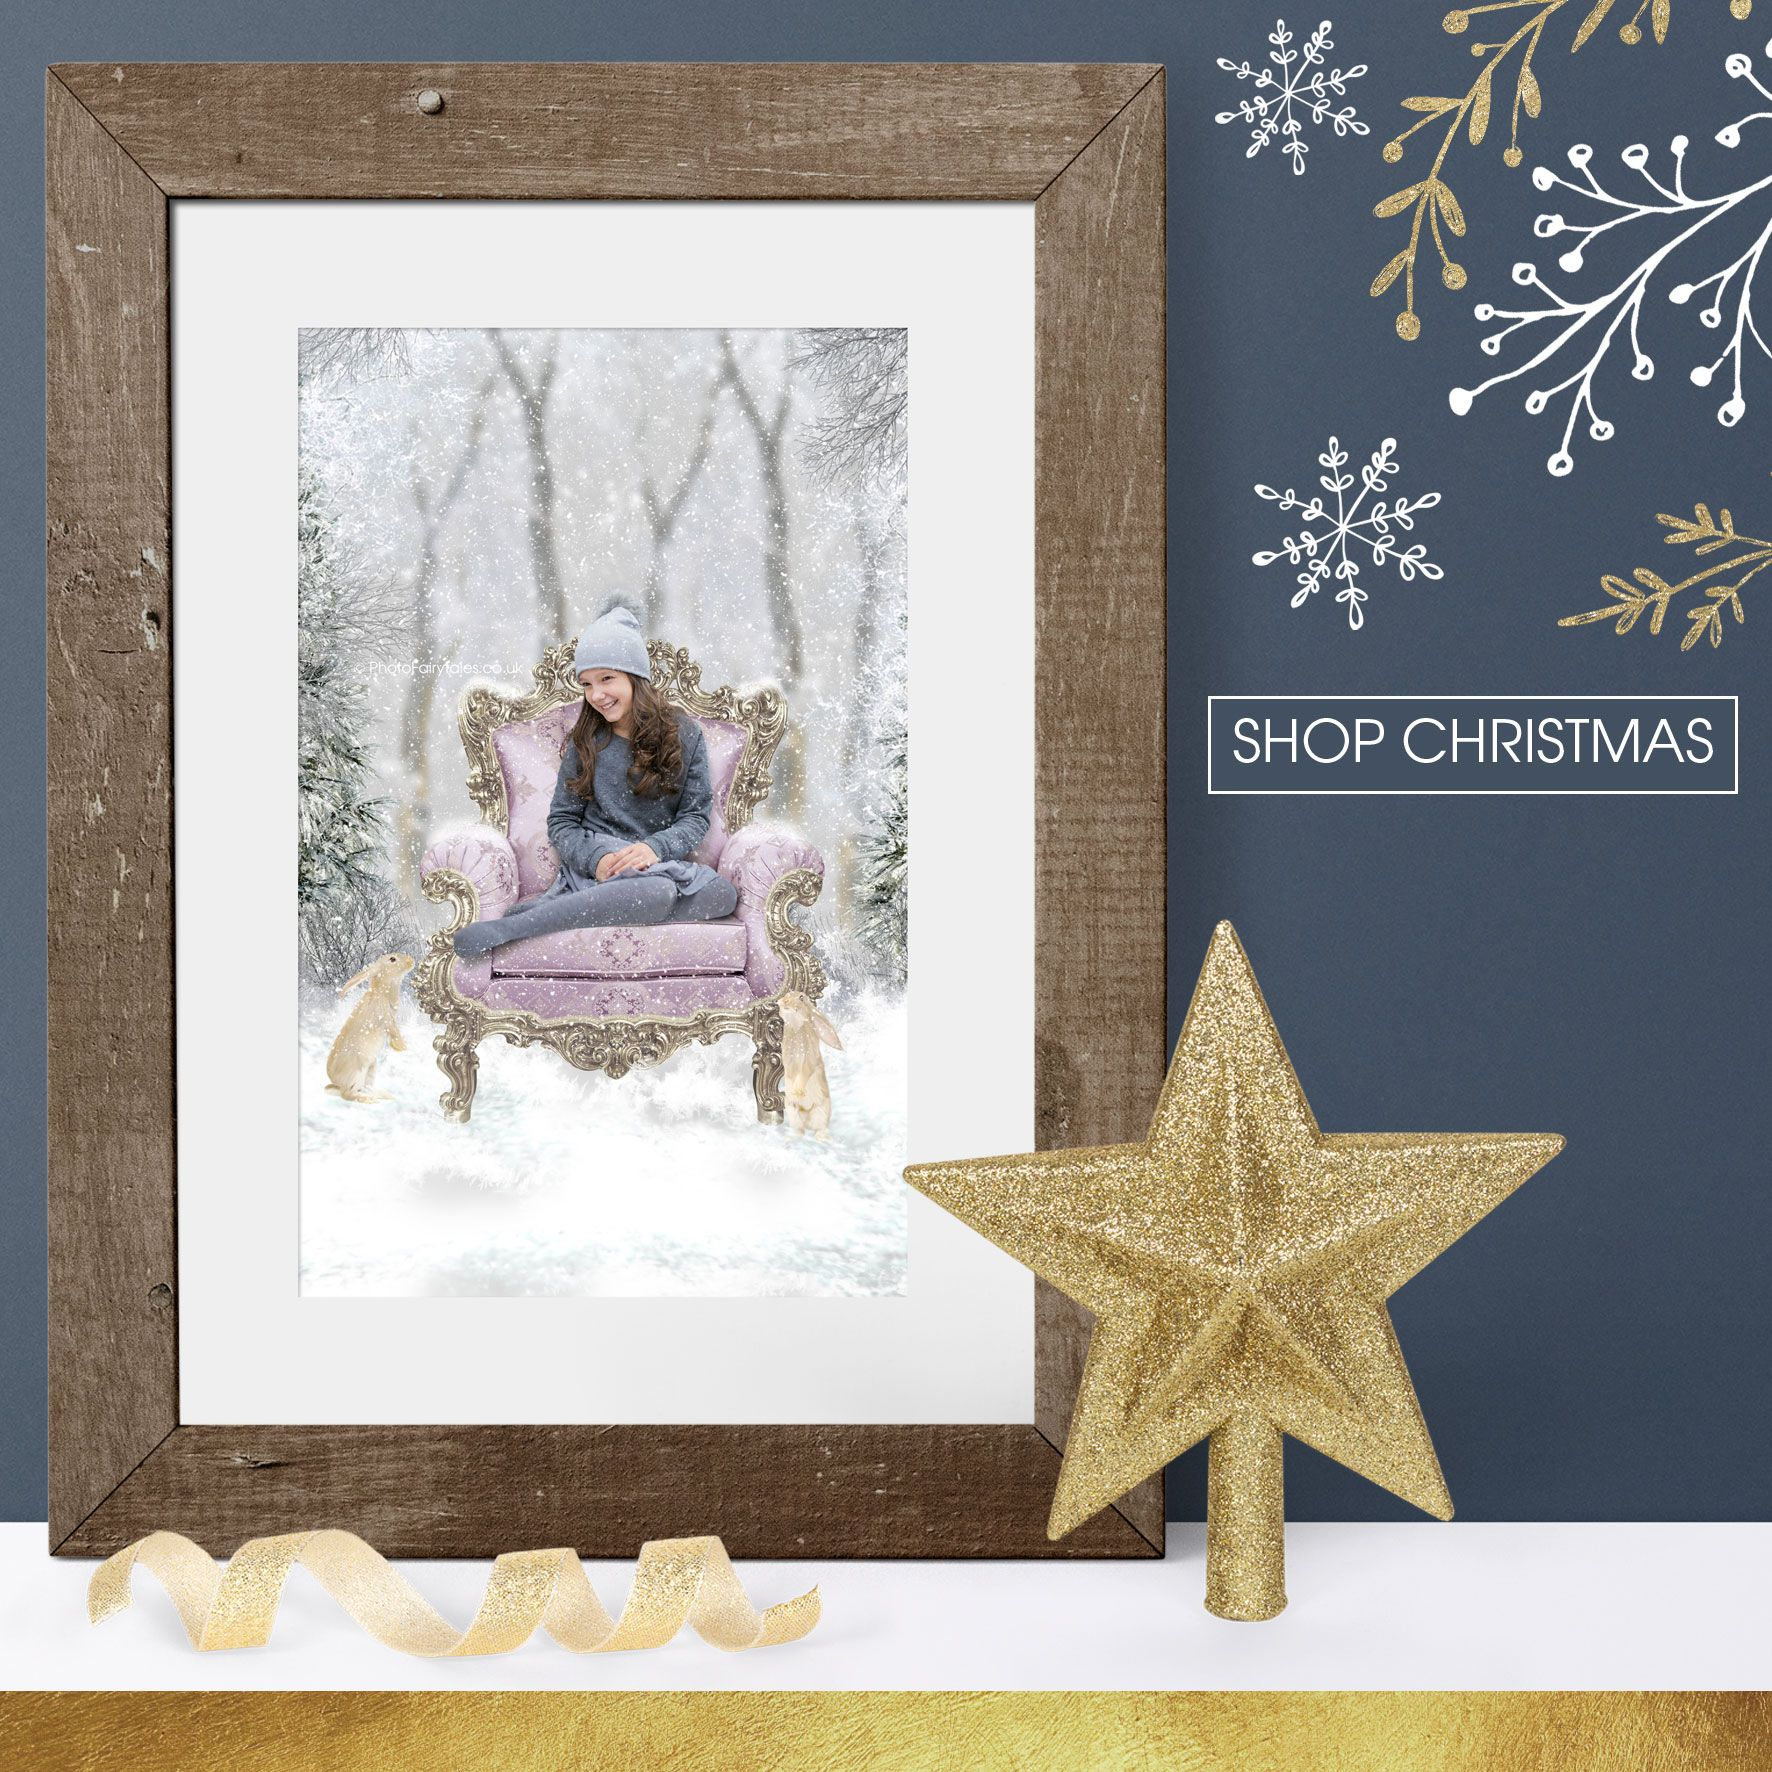 Personalised Christmas Gifts from PhotoFairytales | Unique, handmade gifts and keepsakes